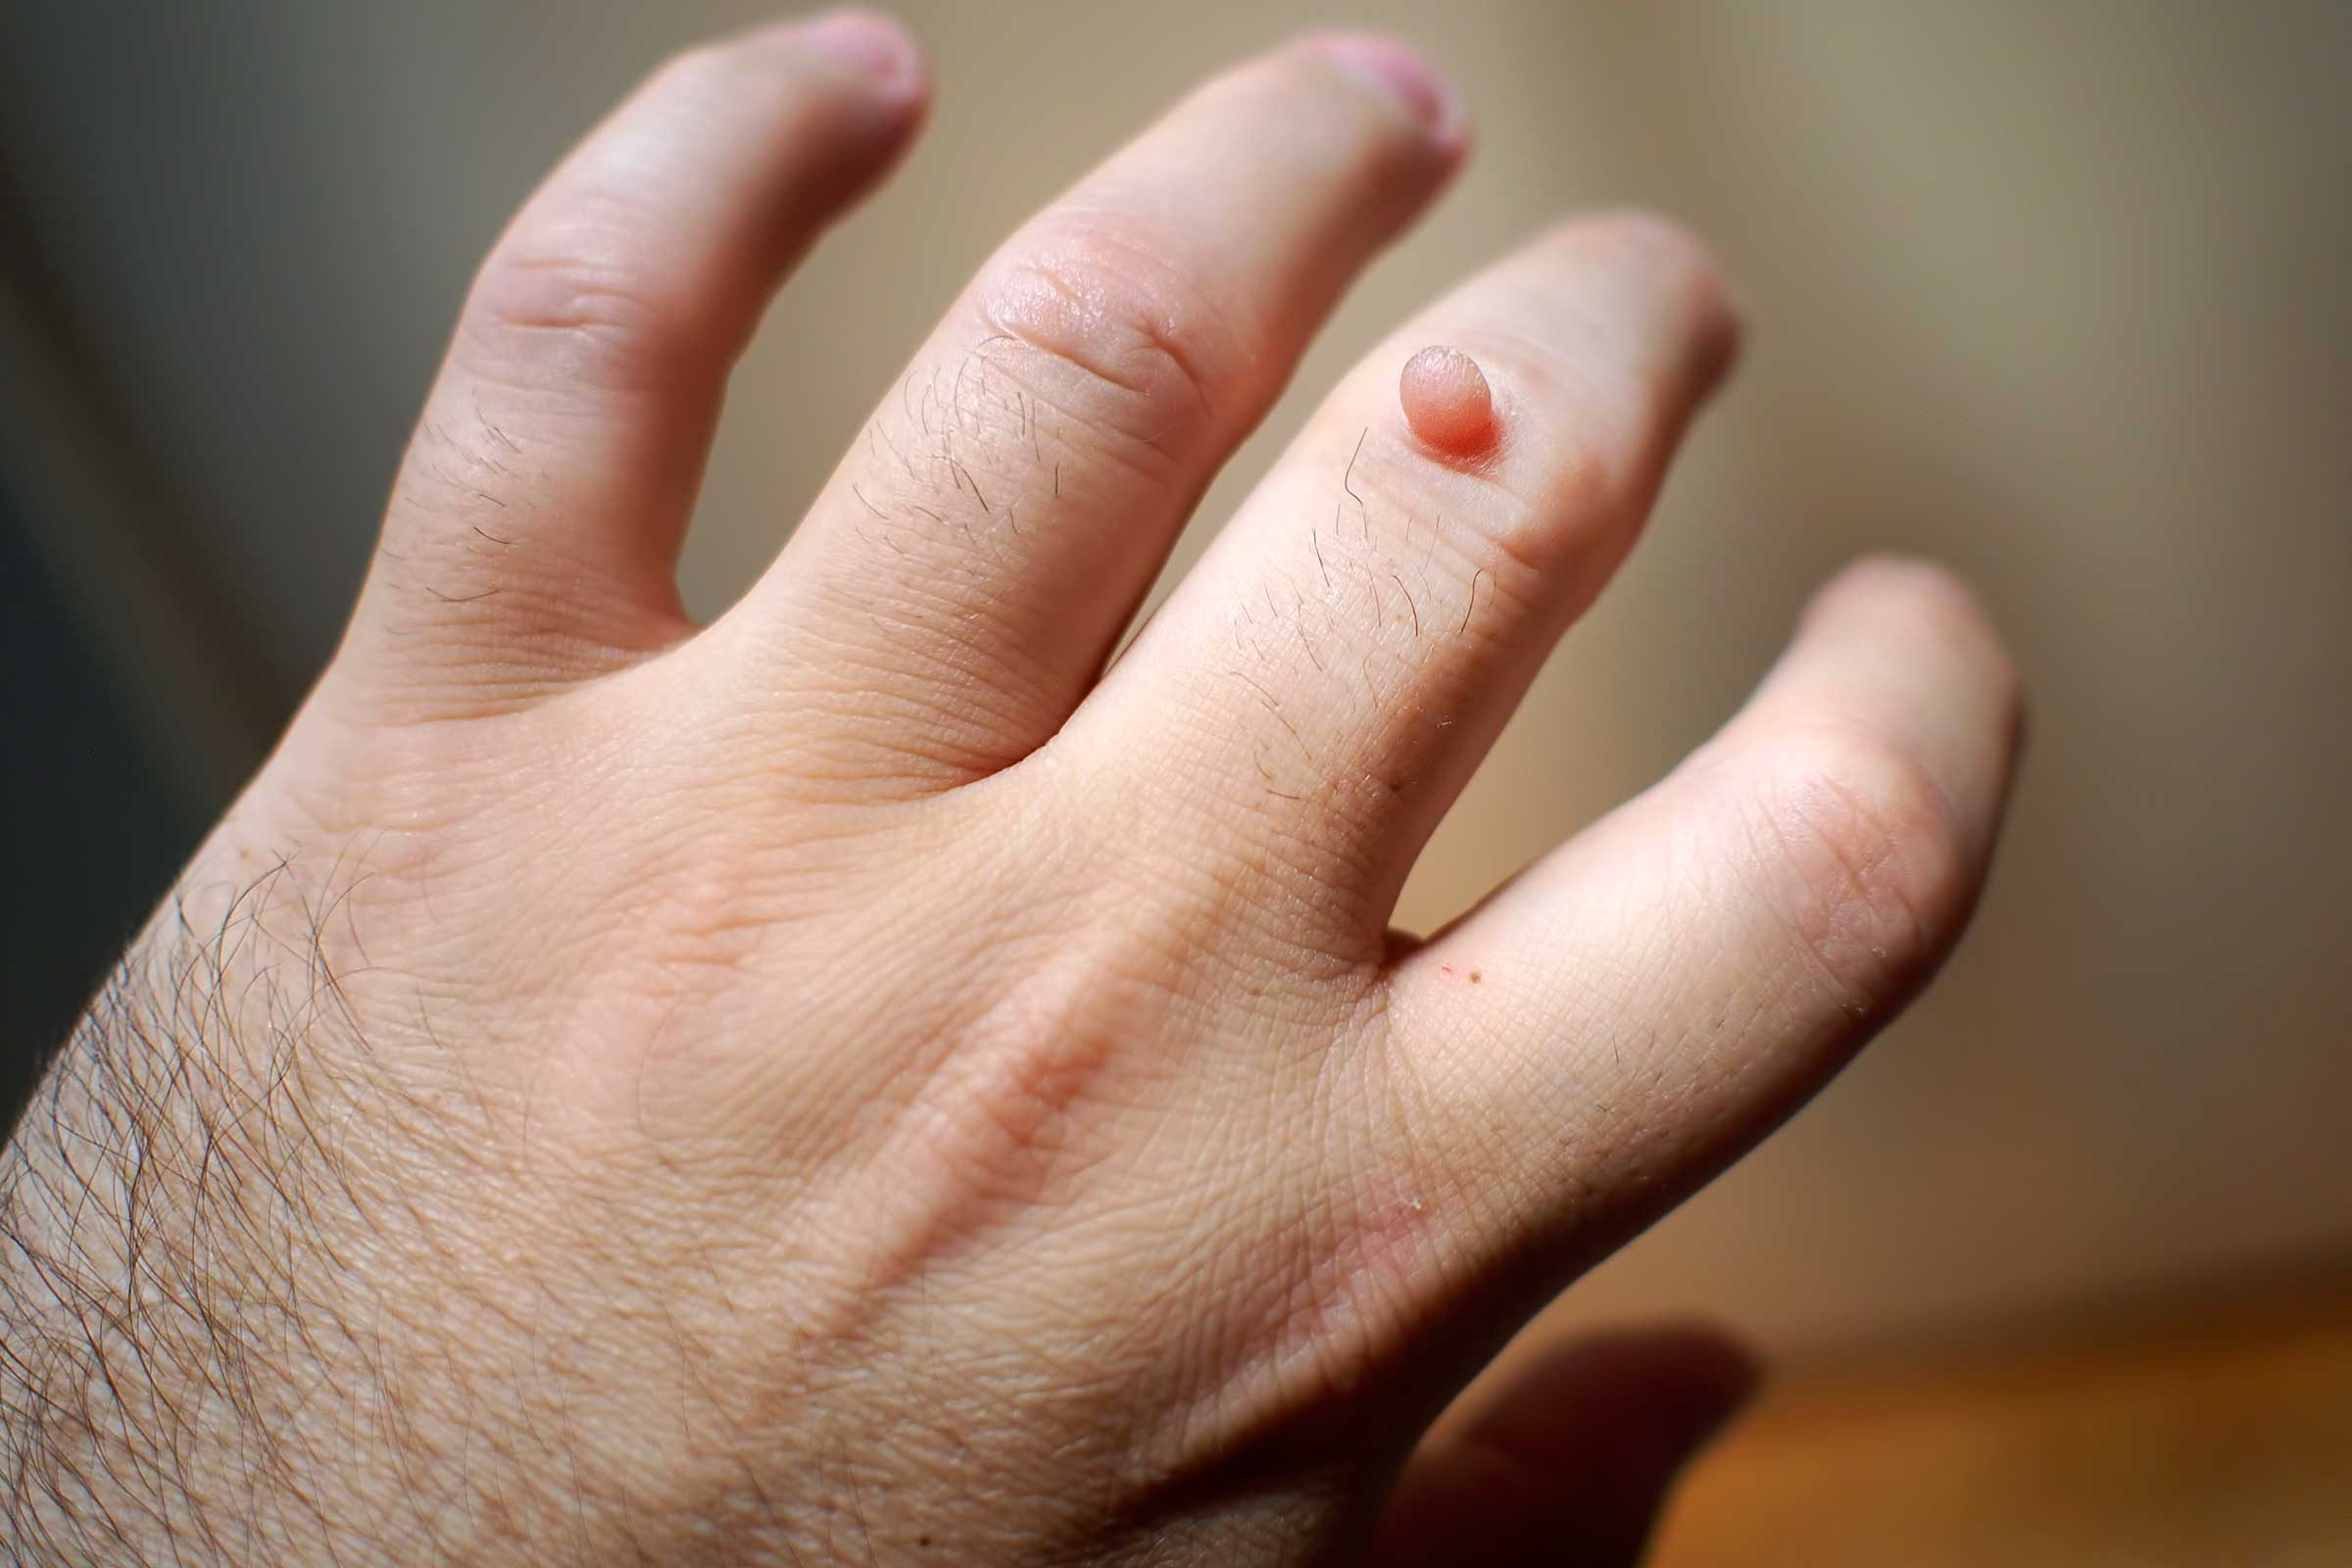 warts on hands medical term